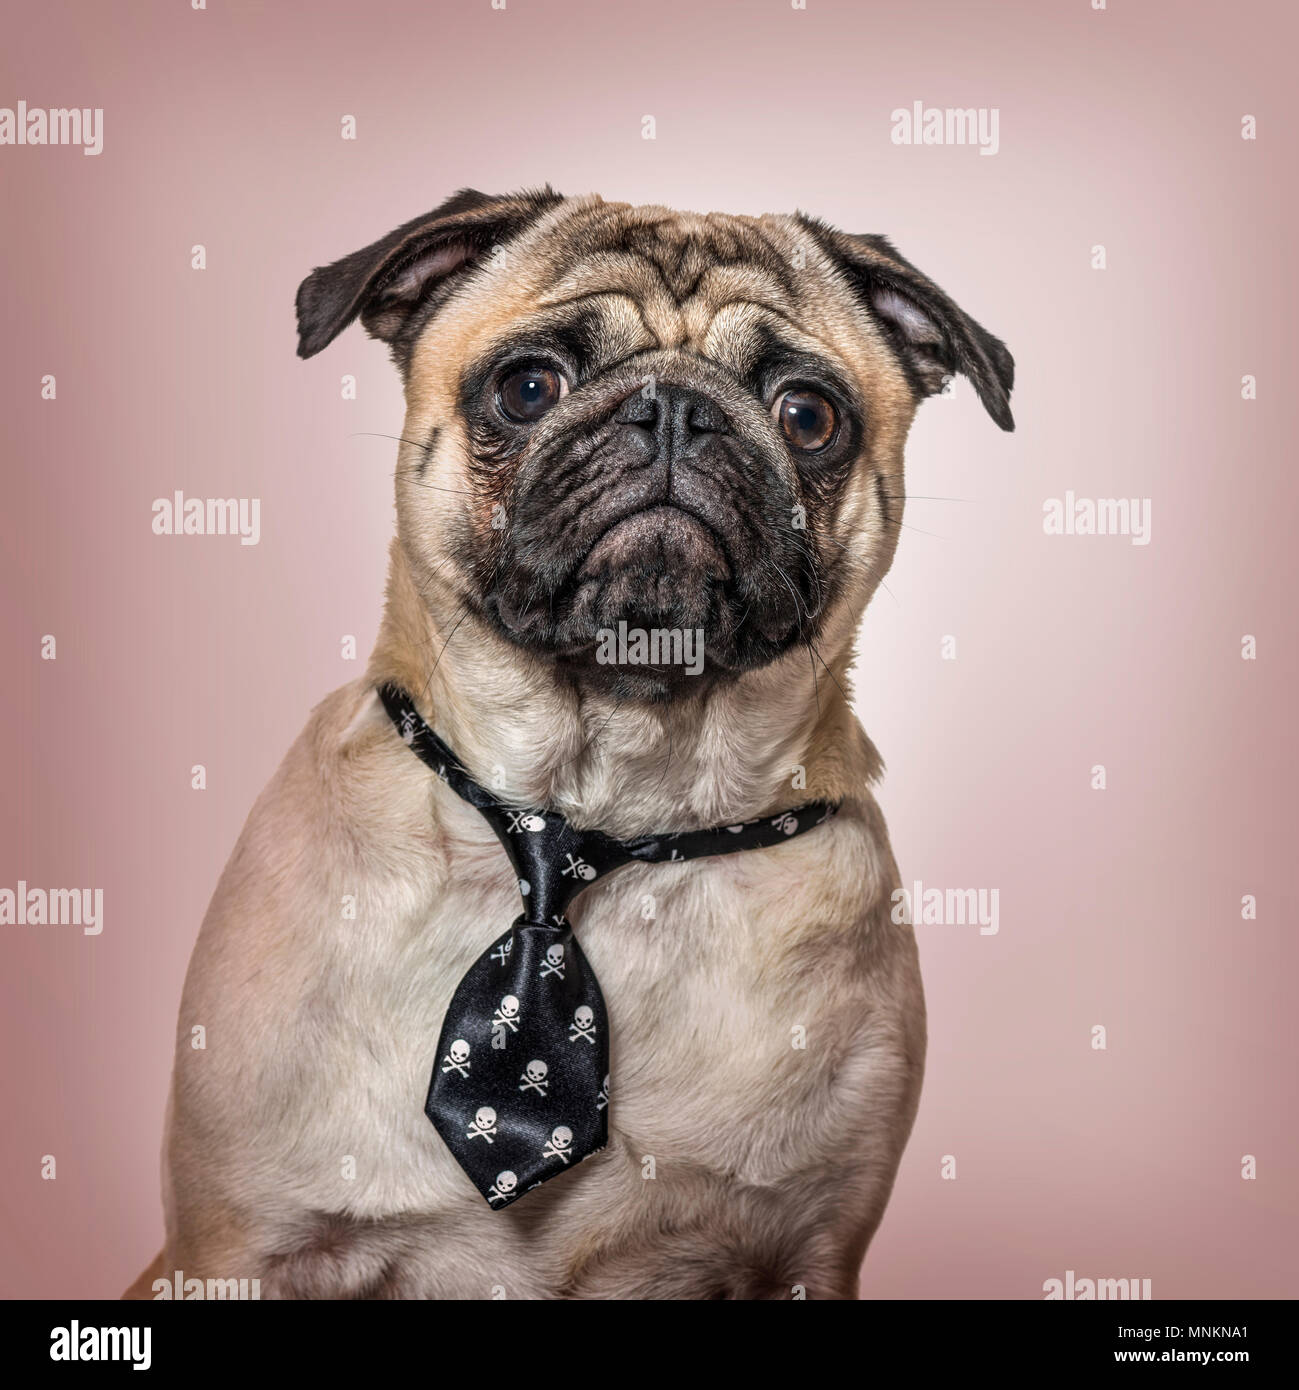 Pug wearing tie sitting against brown background - Stock Image